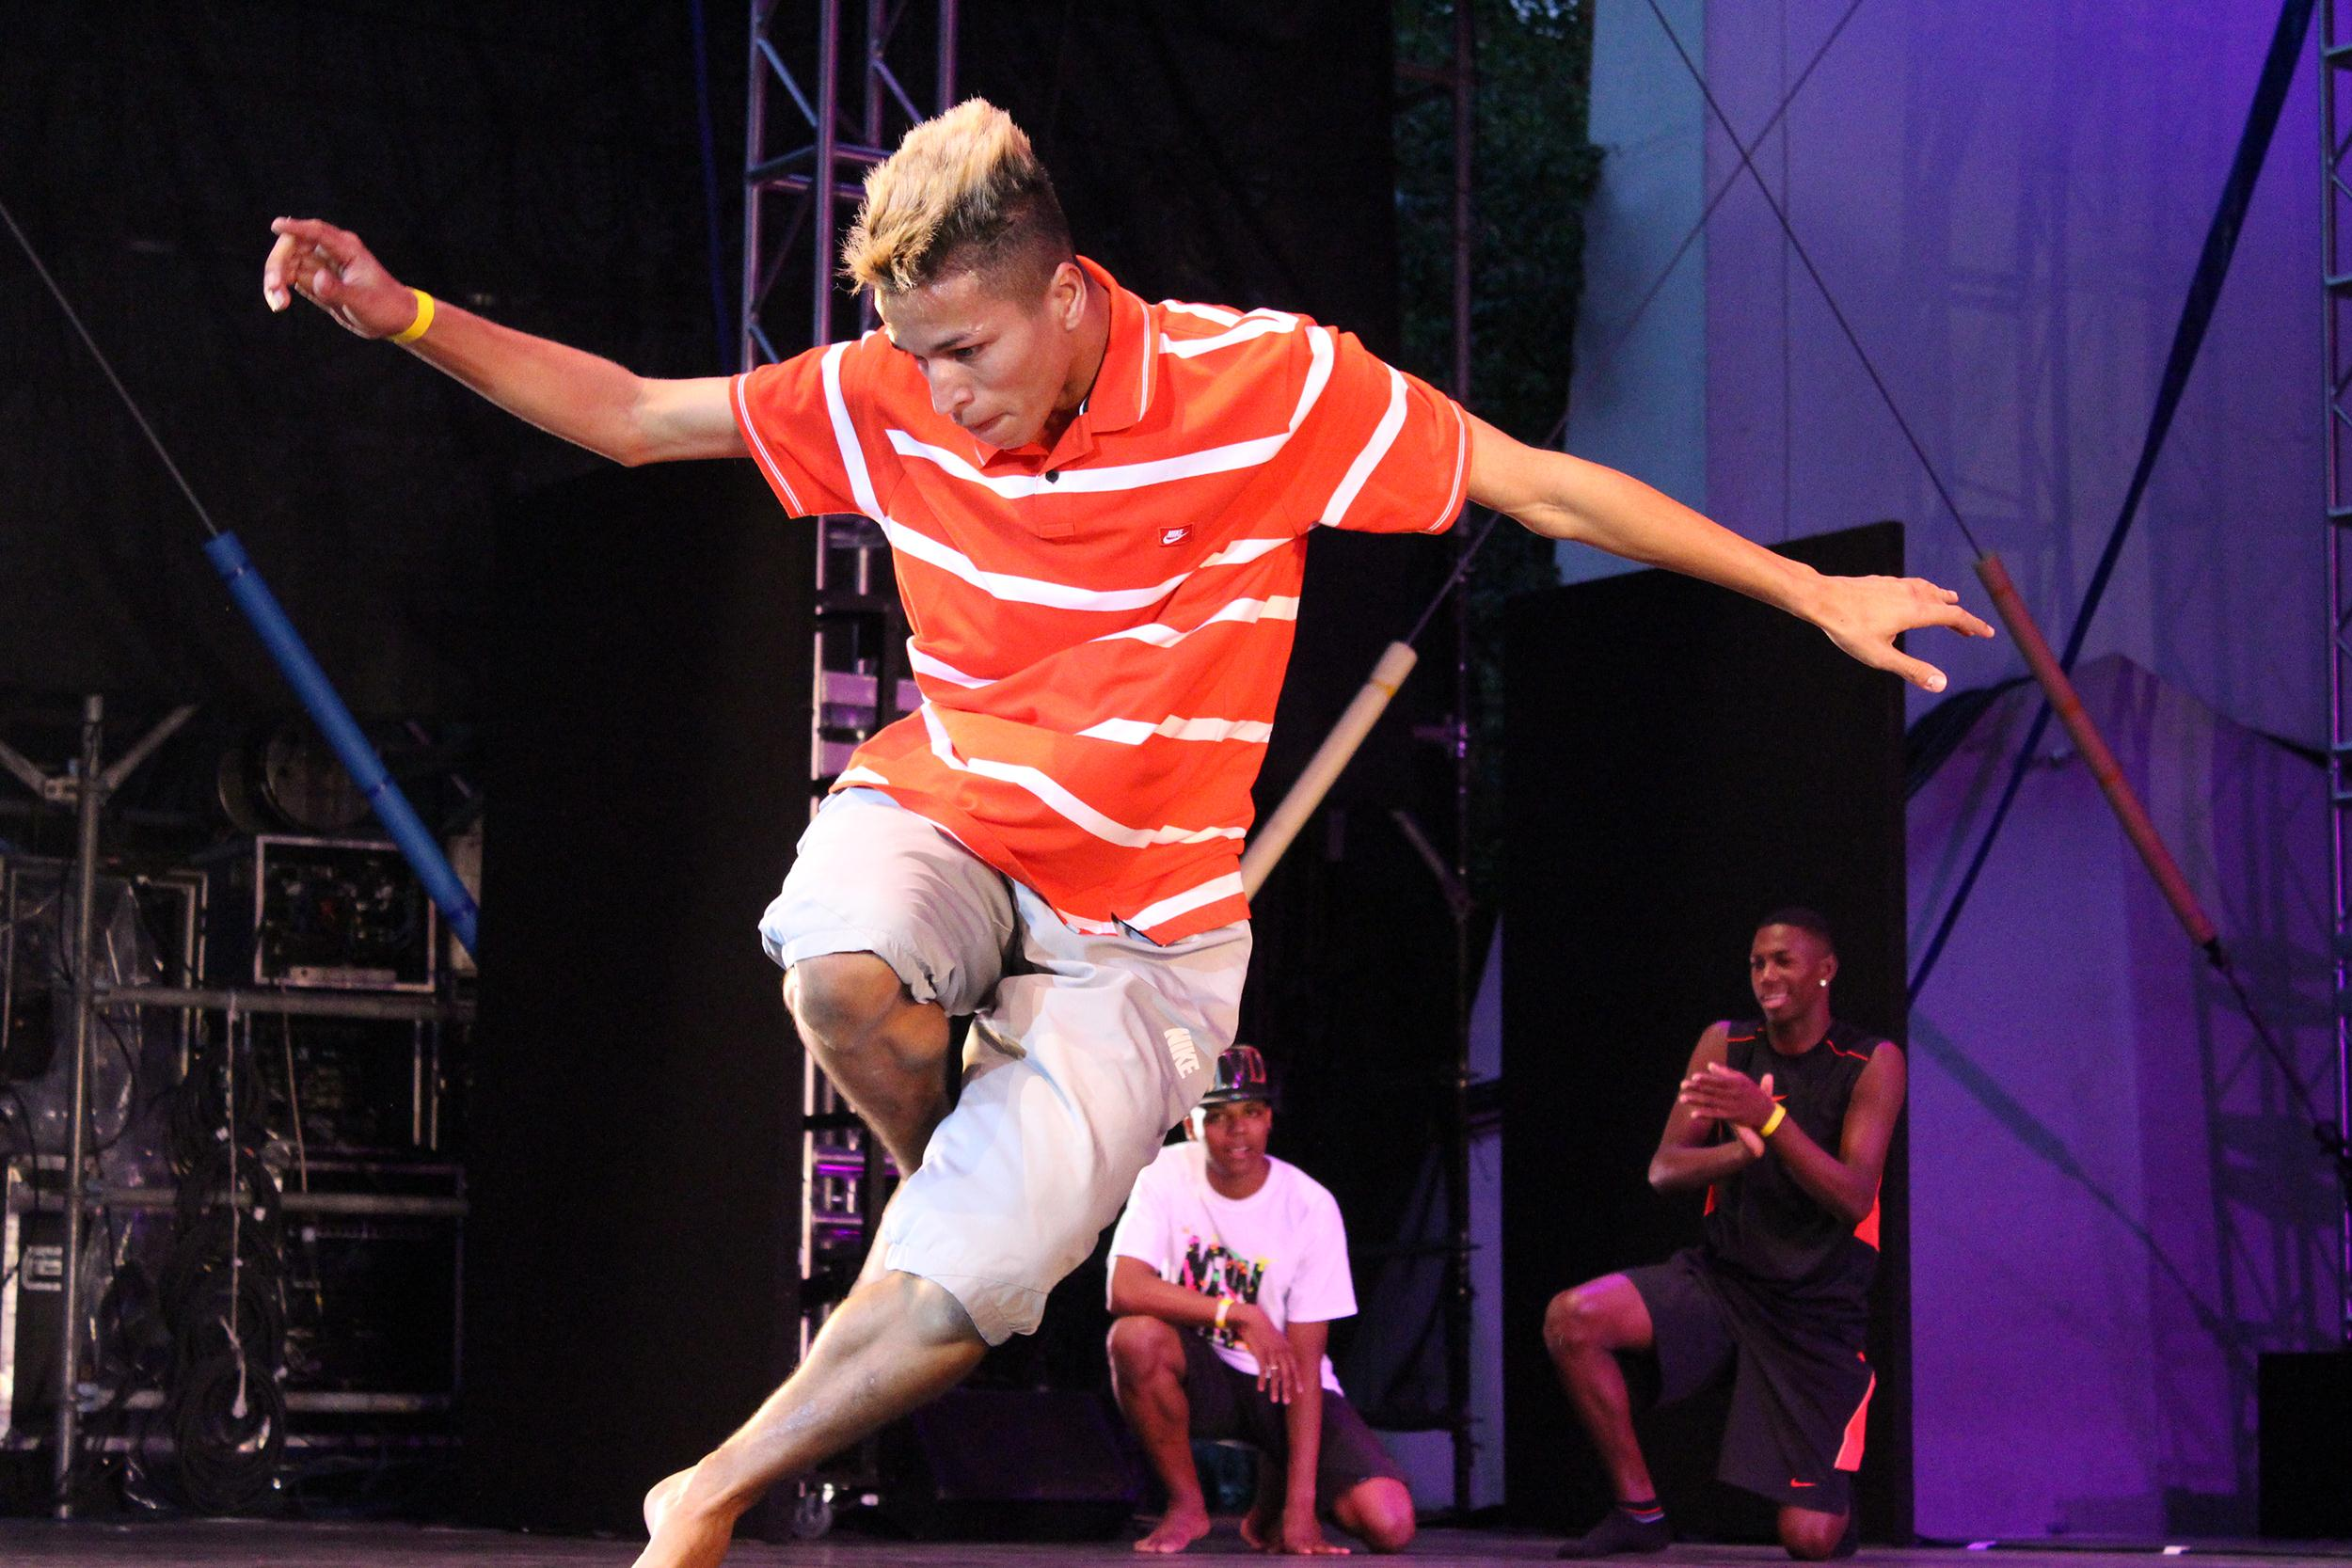 Image: Each dancer only has 45 seconds on stage to win Batalha do Passinho, the fast-paced Brazilian dance battle.